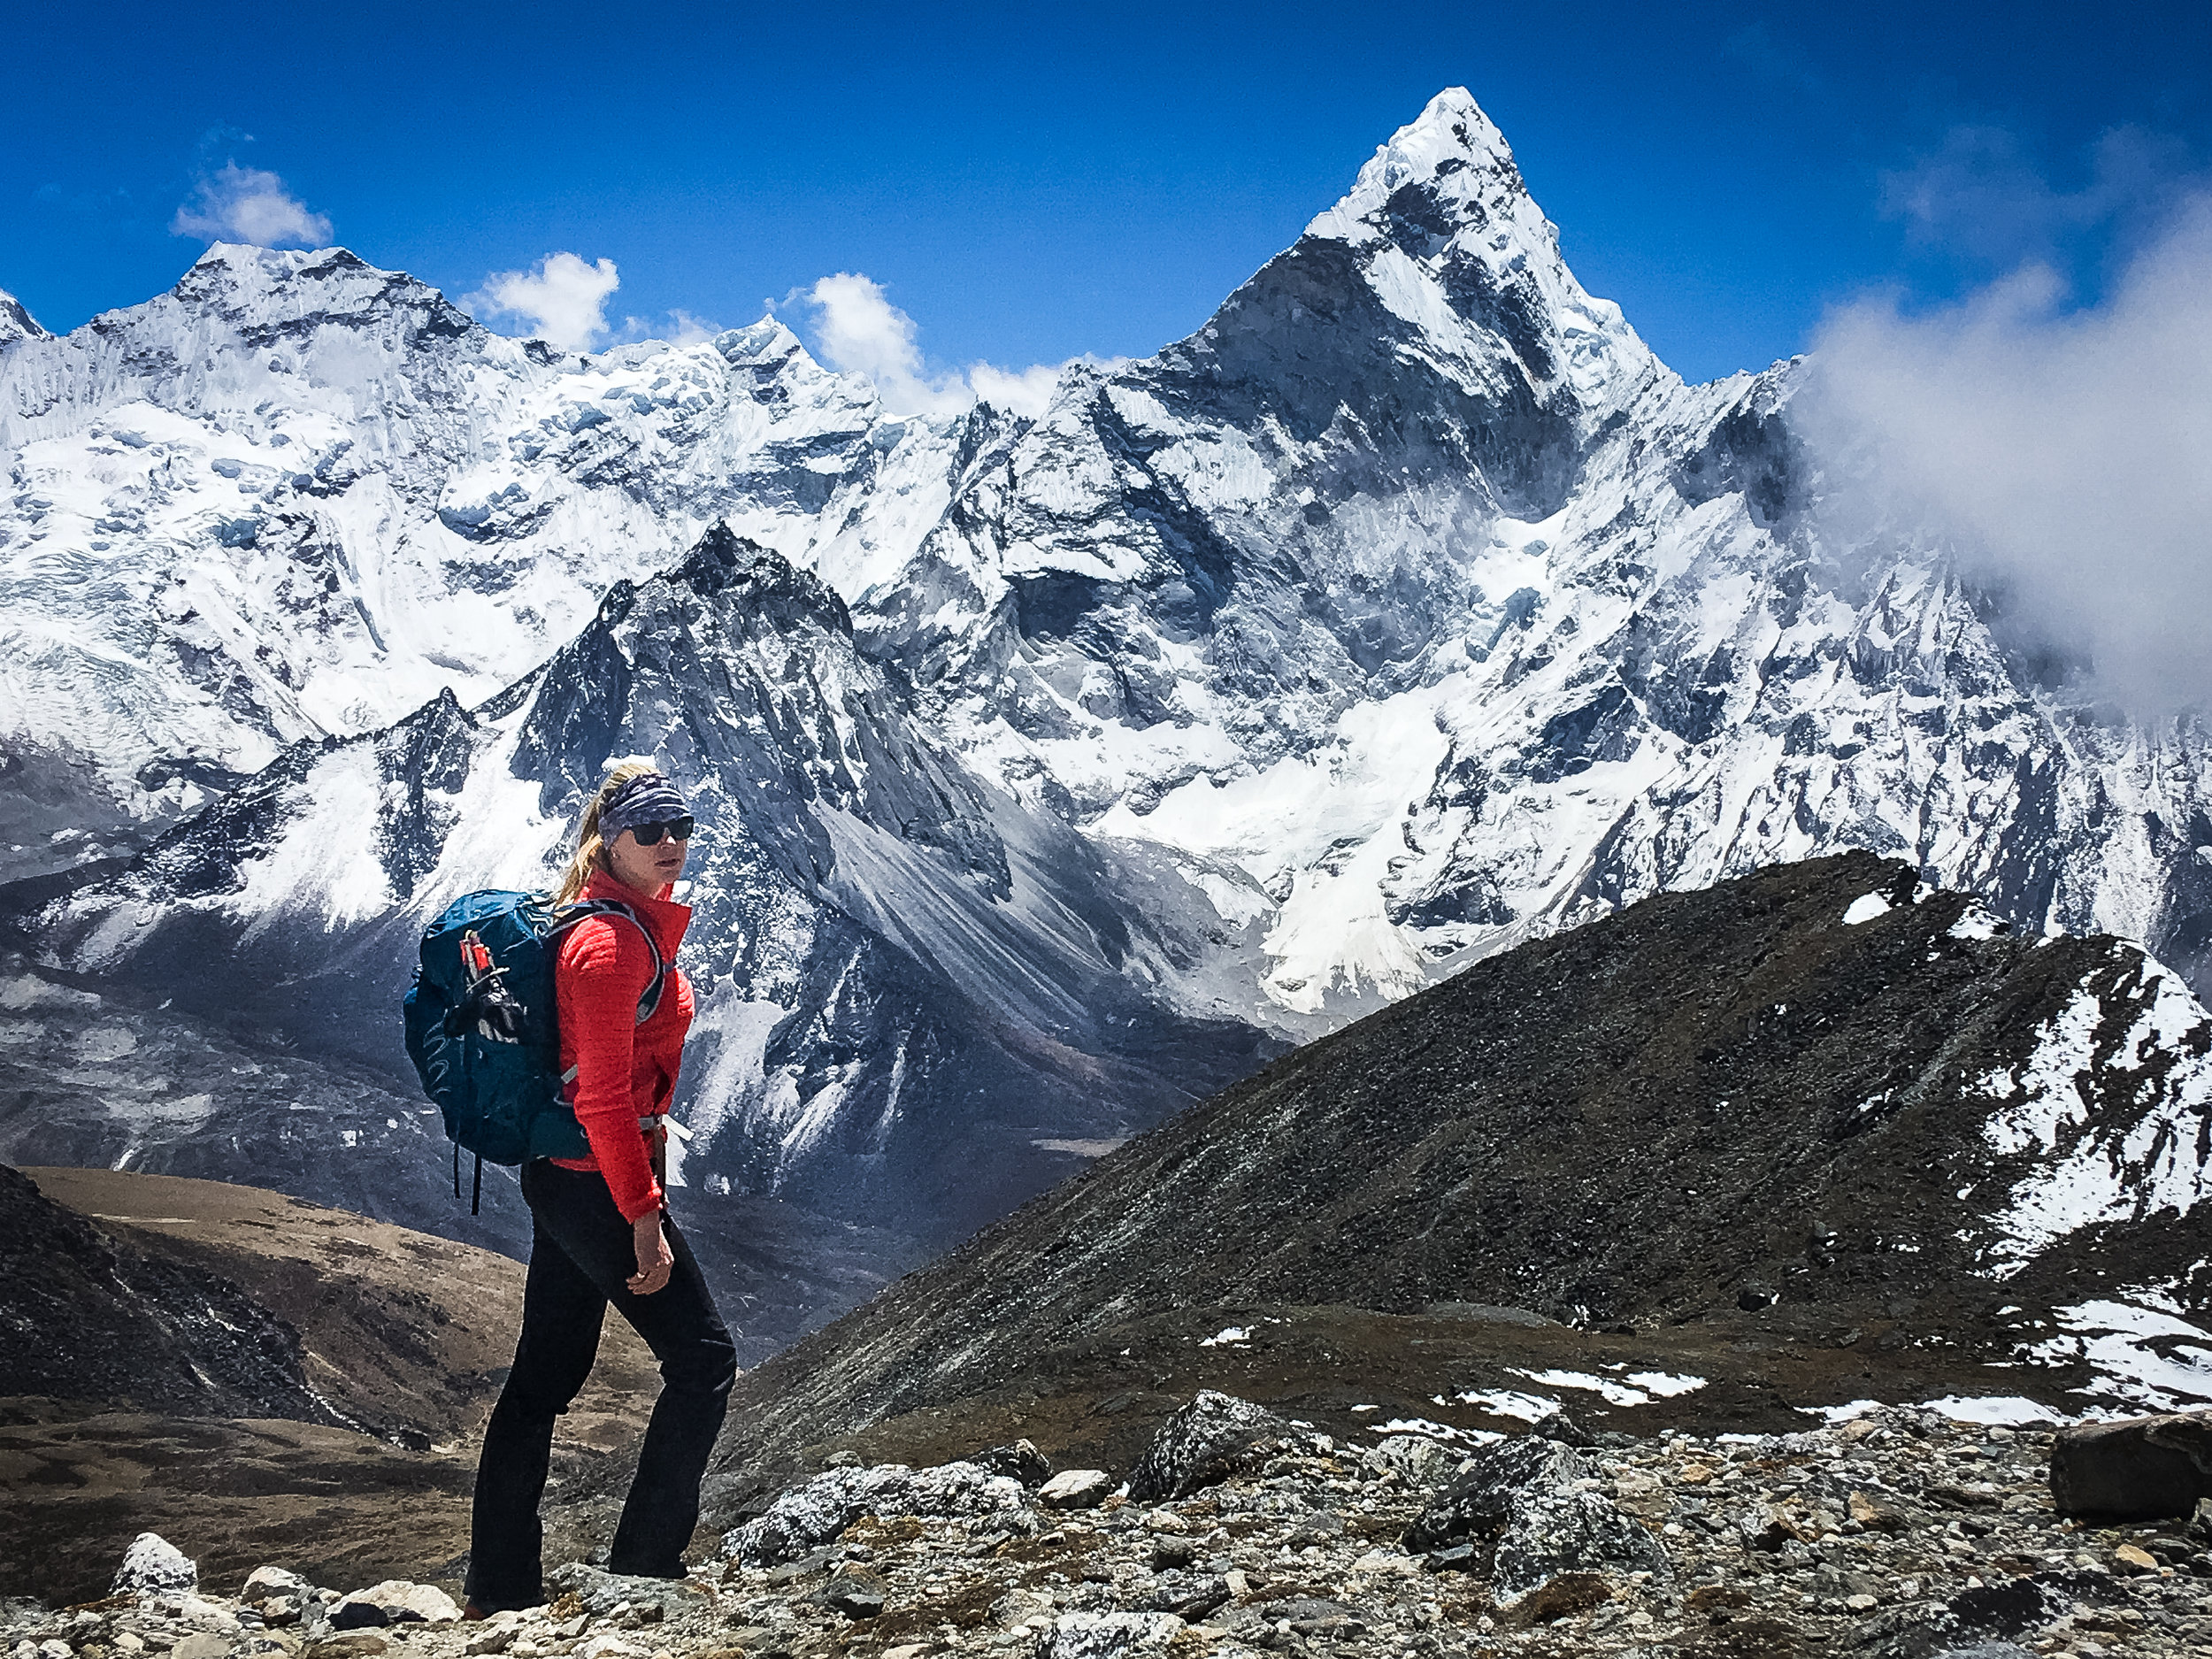 Gemma at the top of the final pass, Kongma La with Ama Dablam in the background.